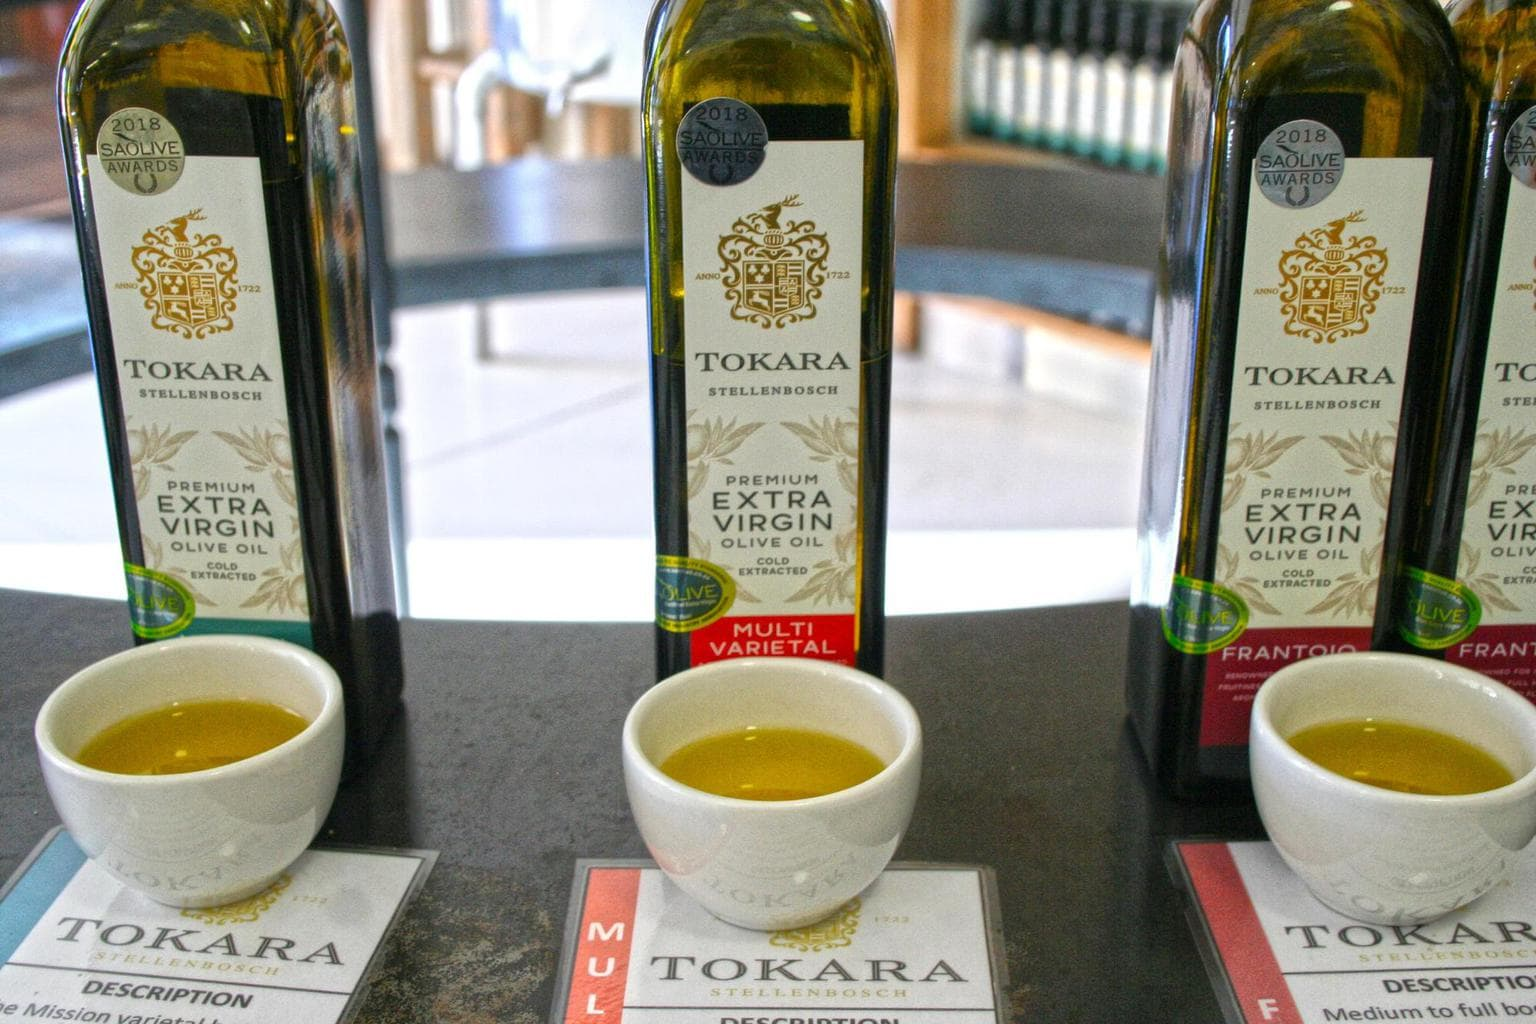 Free olive oil tasting at Tokara